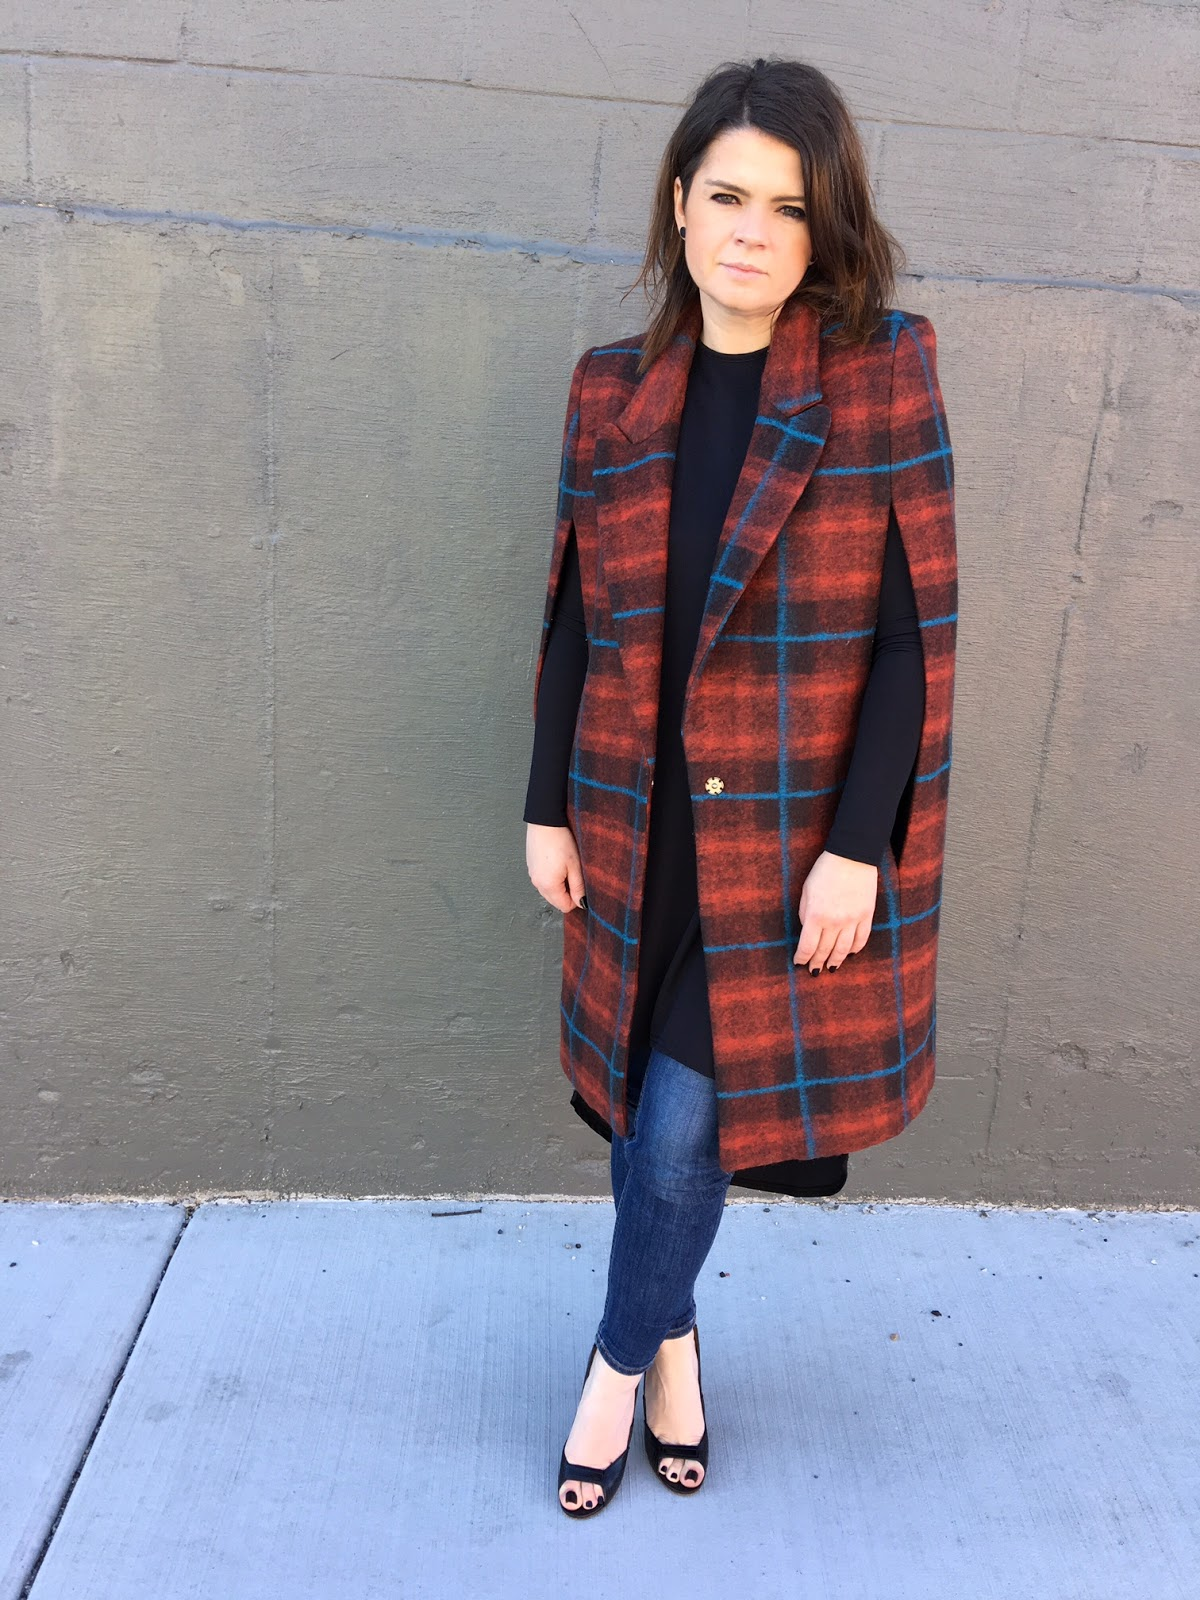 Cape coat in plaid